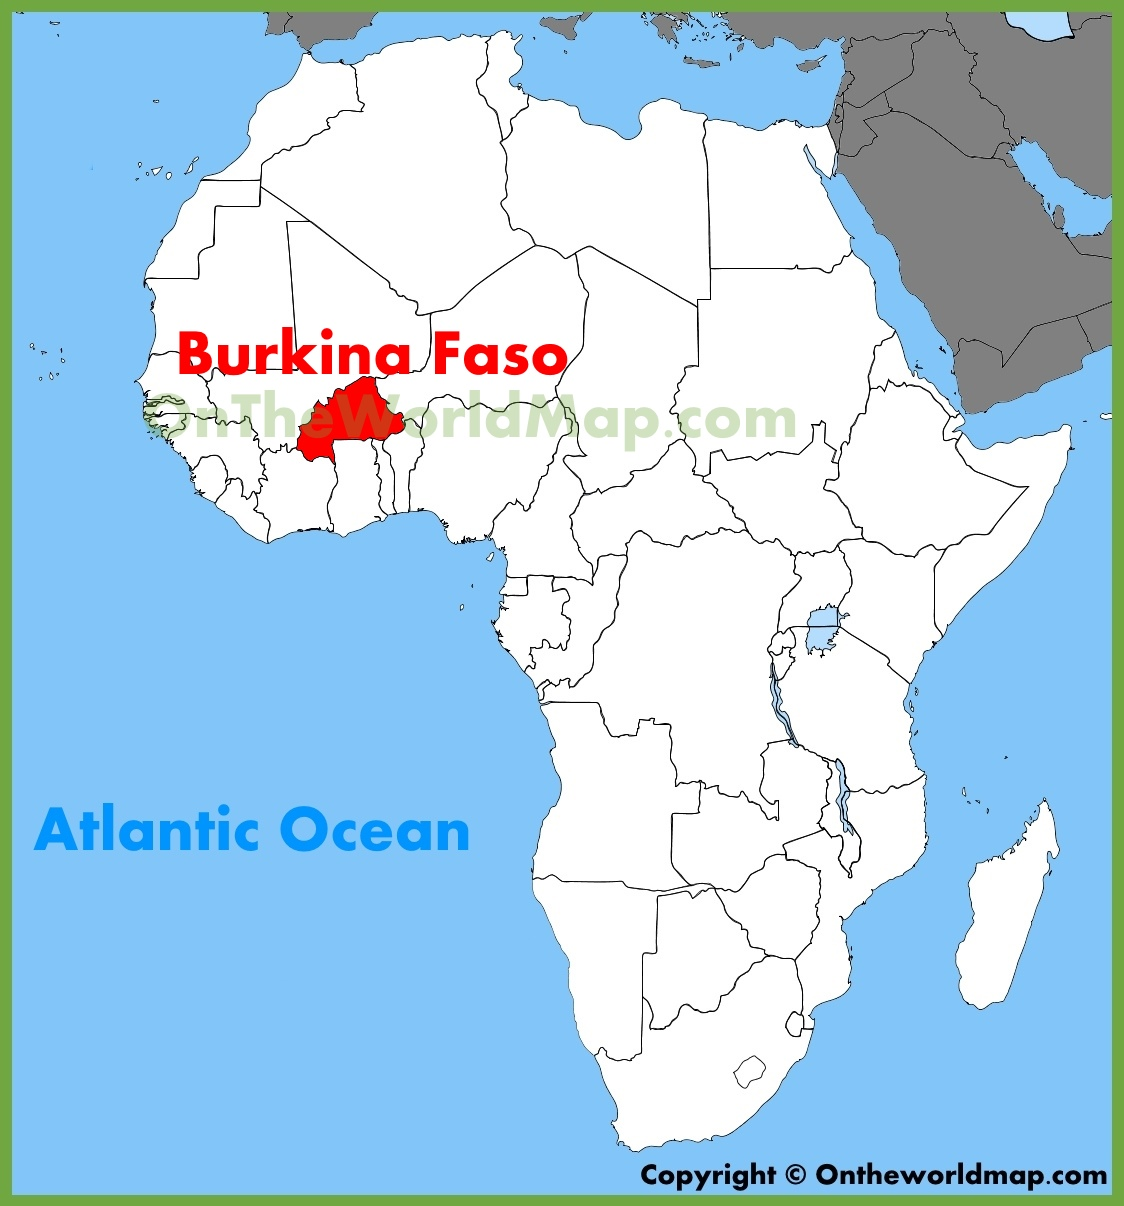 Where Is Burkina Faso On The Map Burkina Faso location on the Africa map